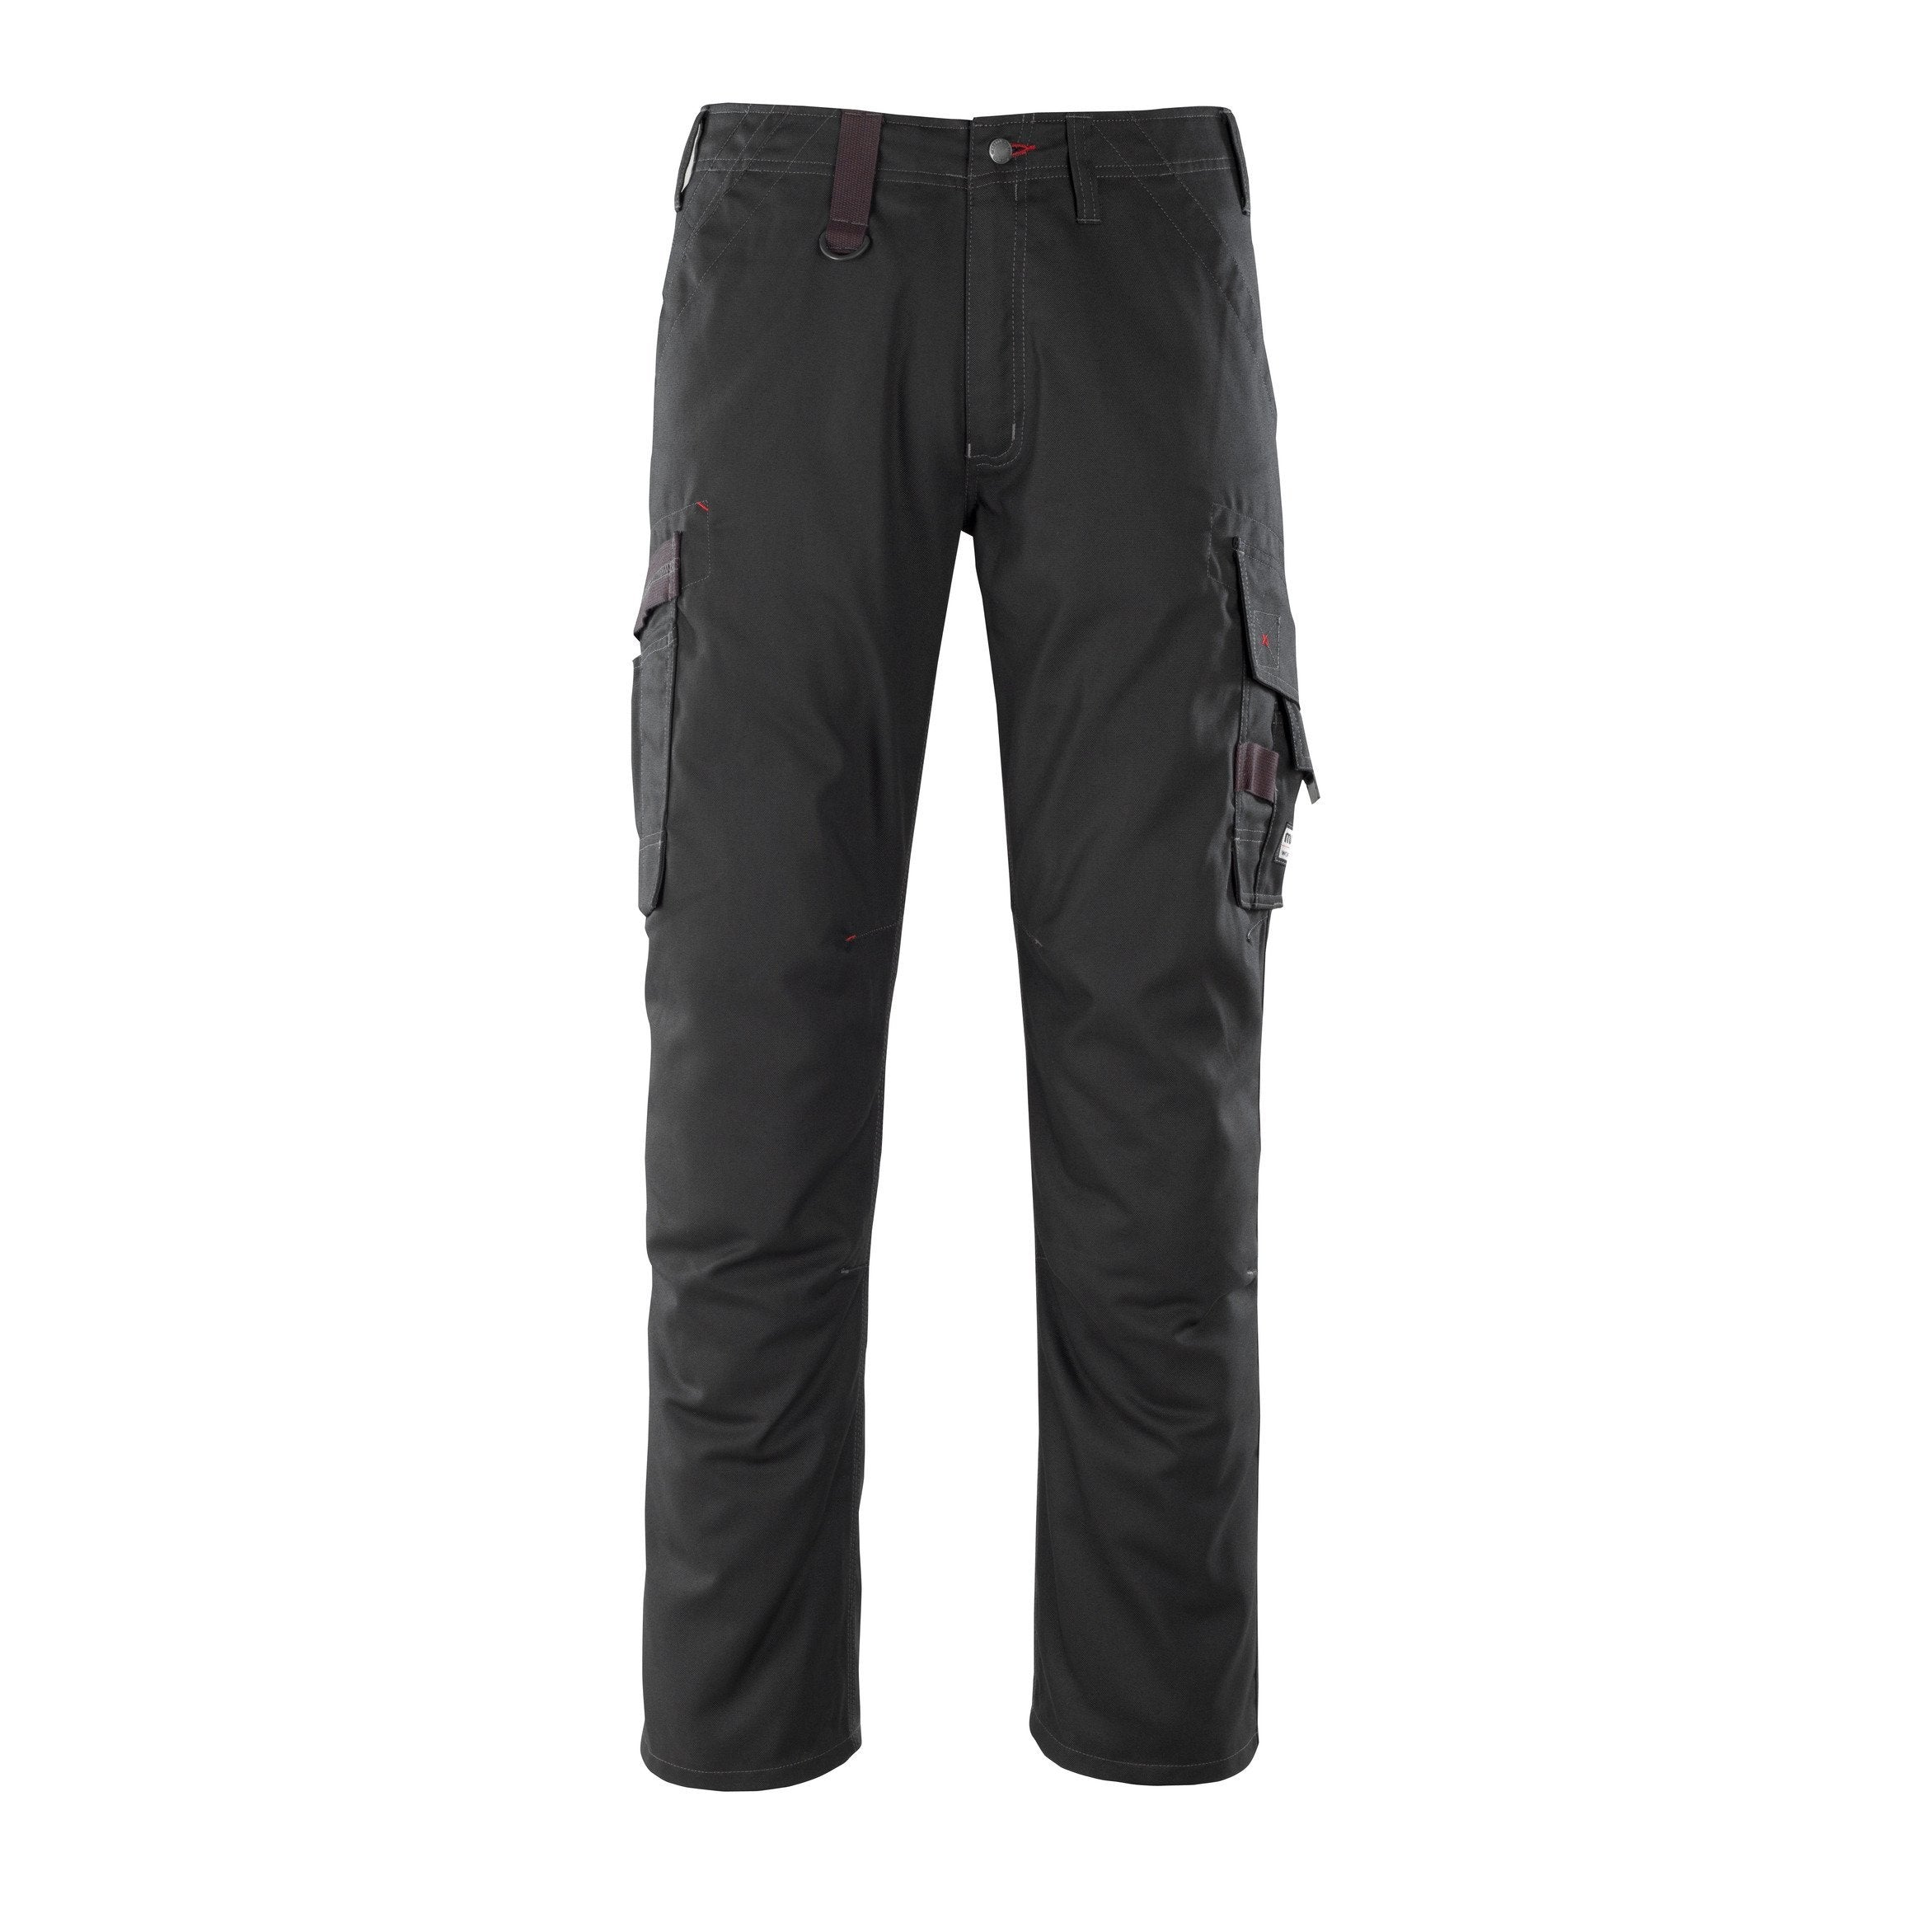 Mascot Rhodos Frontline Trousers With Thigh Pockets